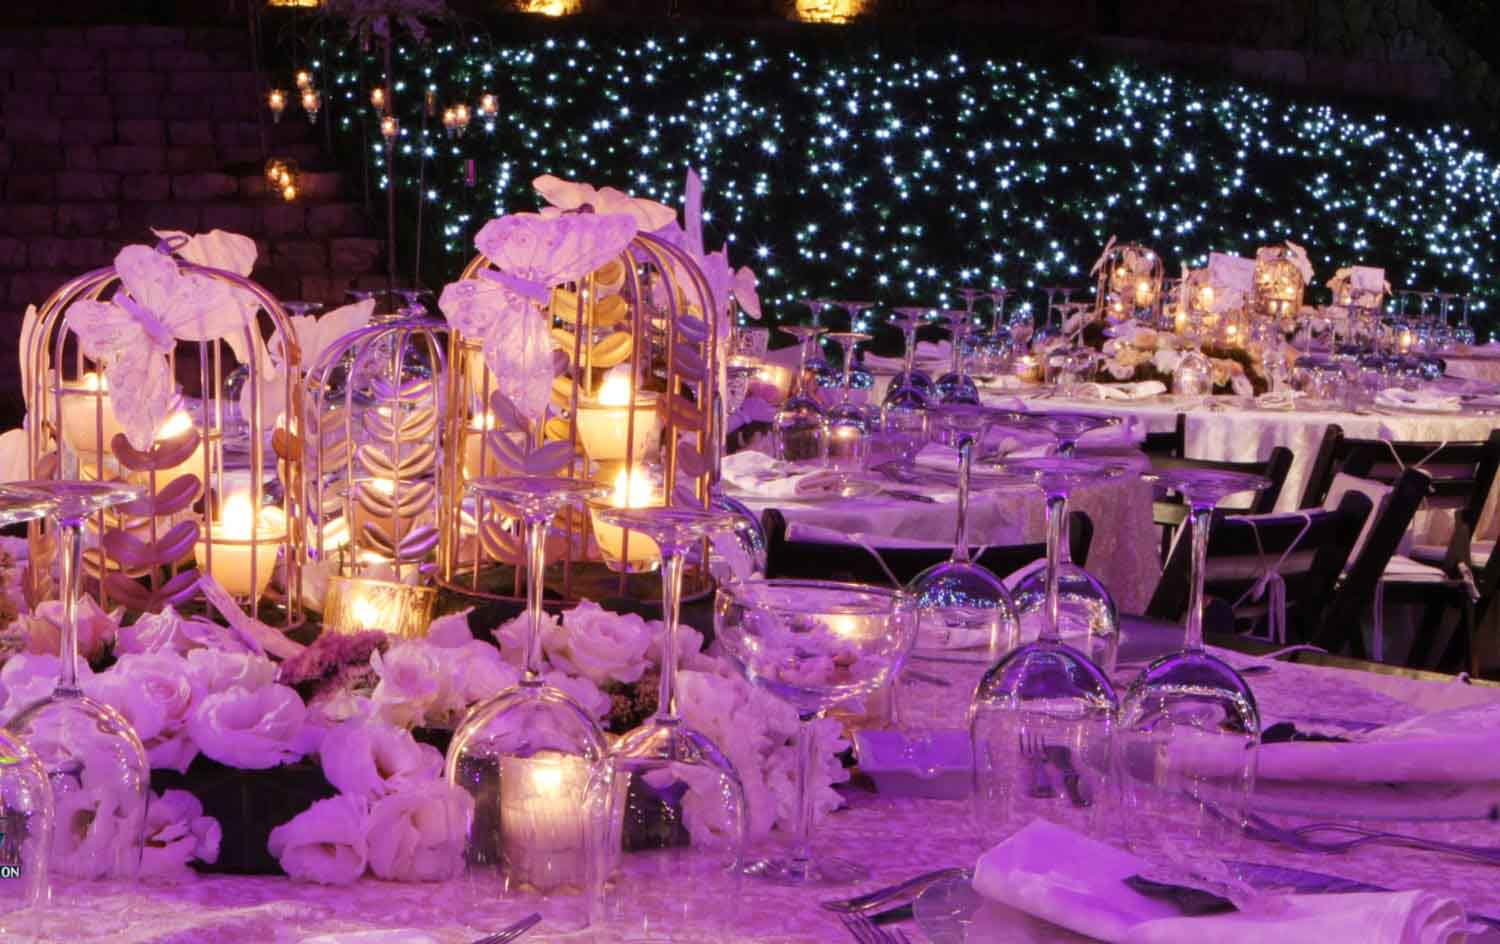 30 Best Catering Companies in Lebanon